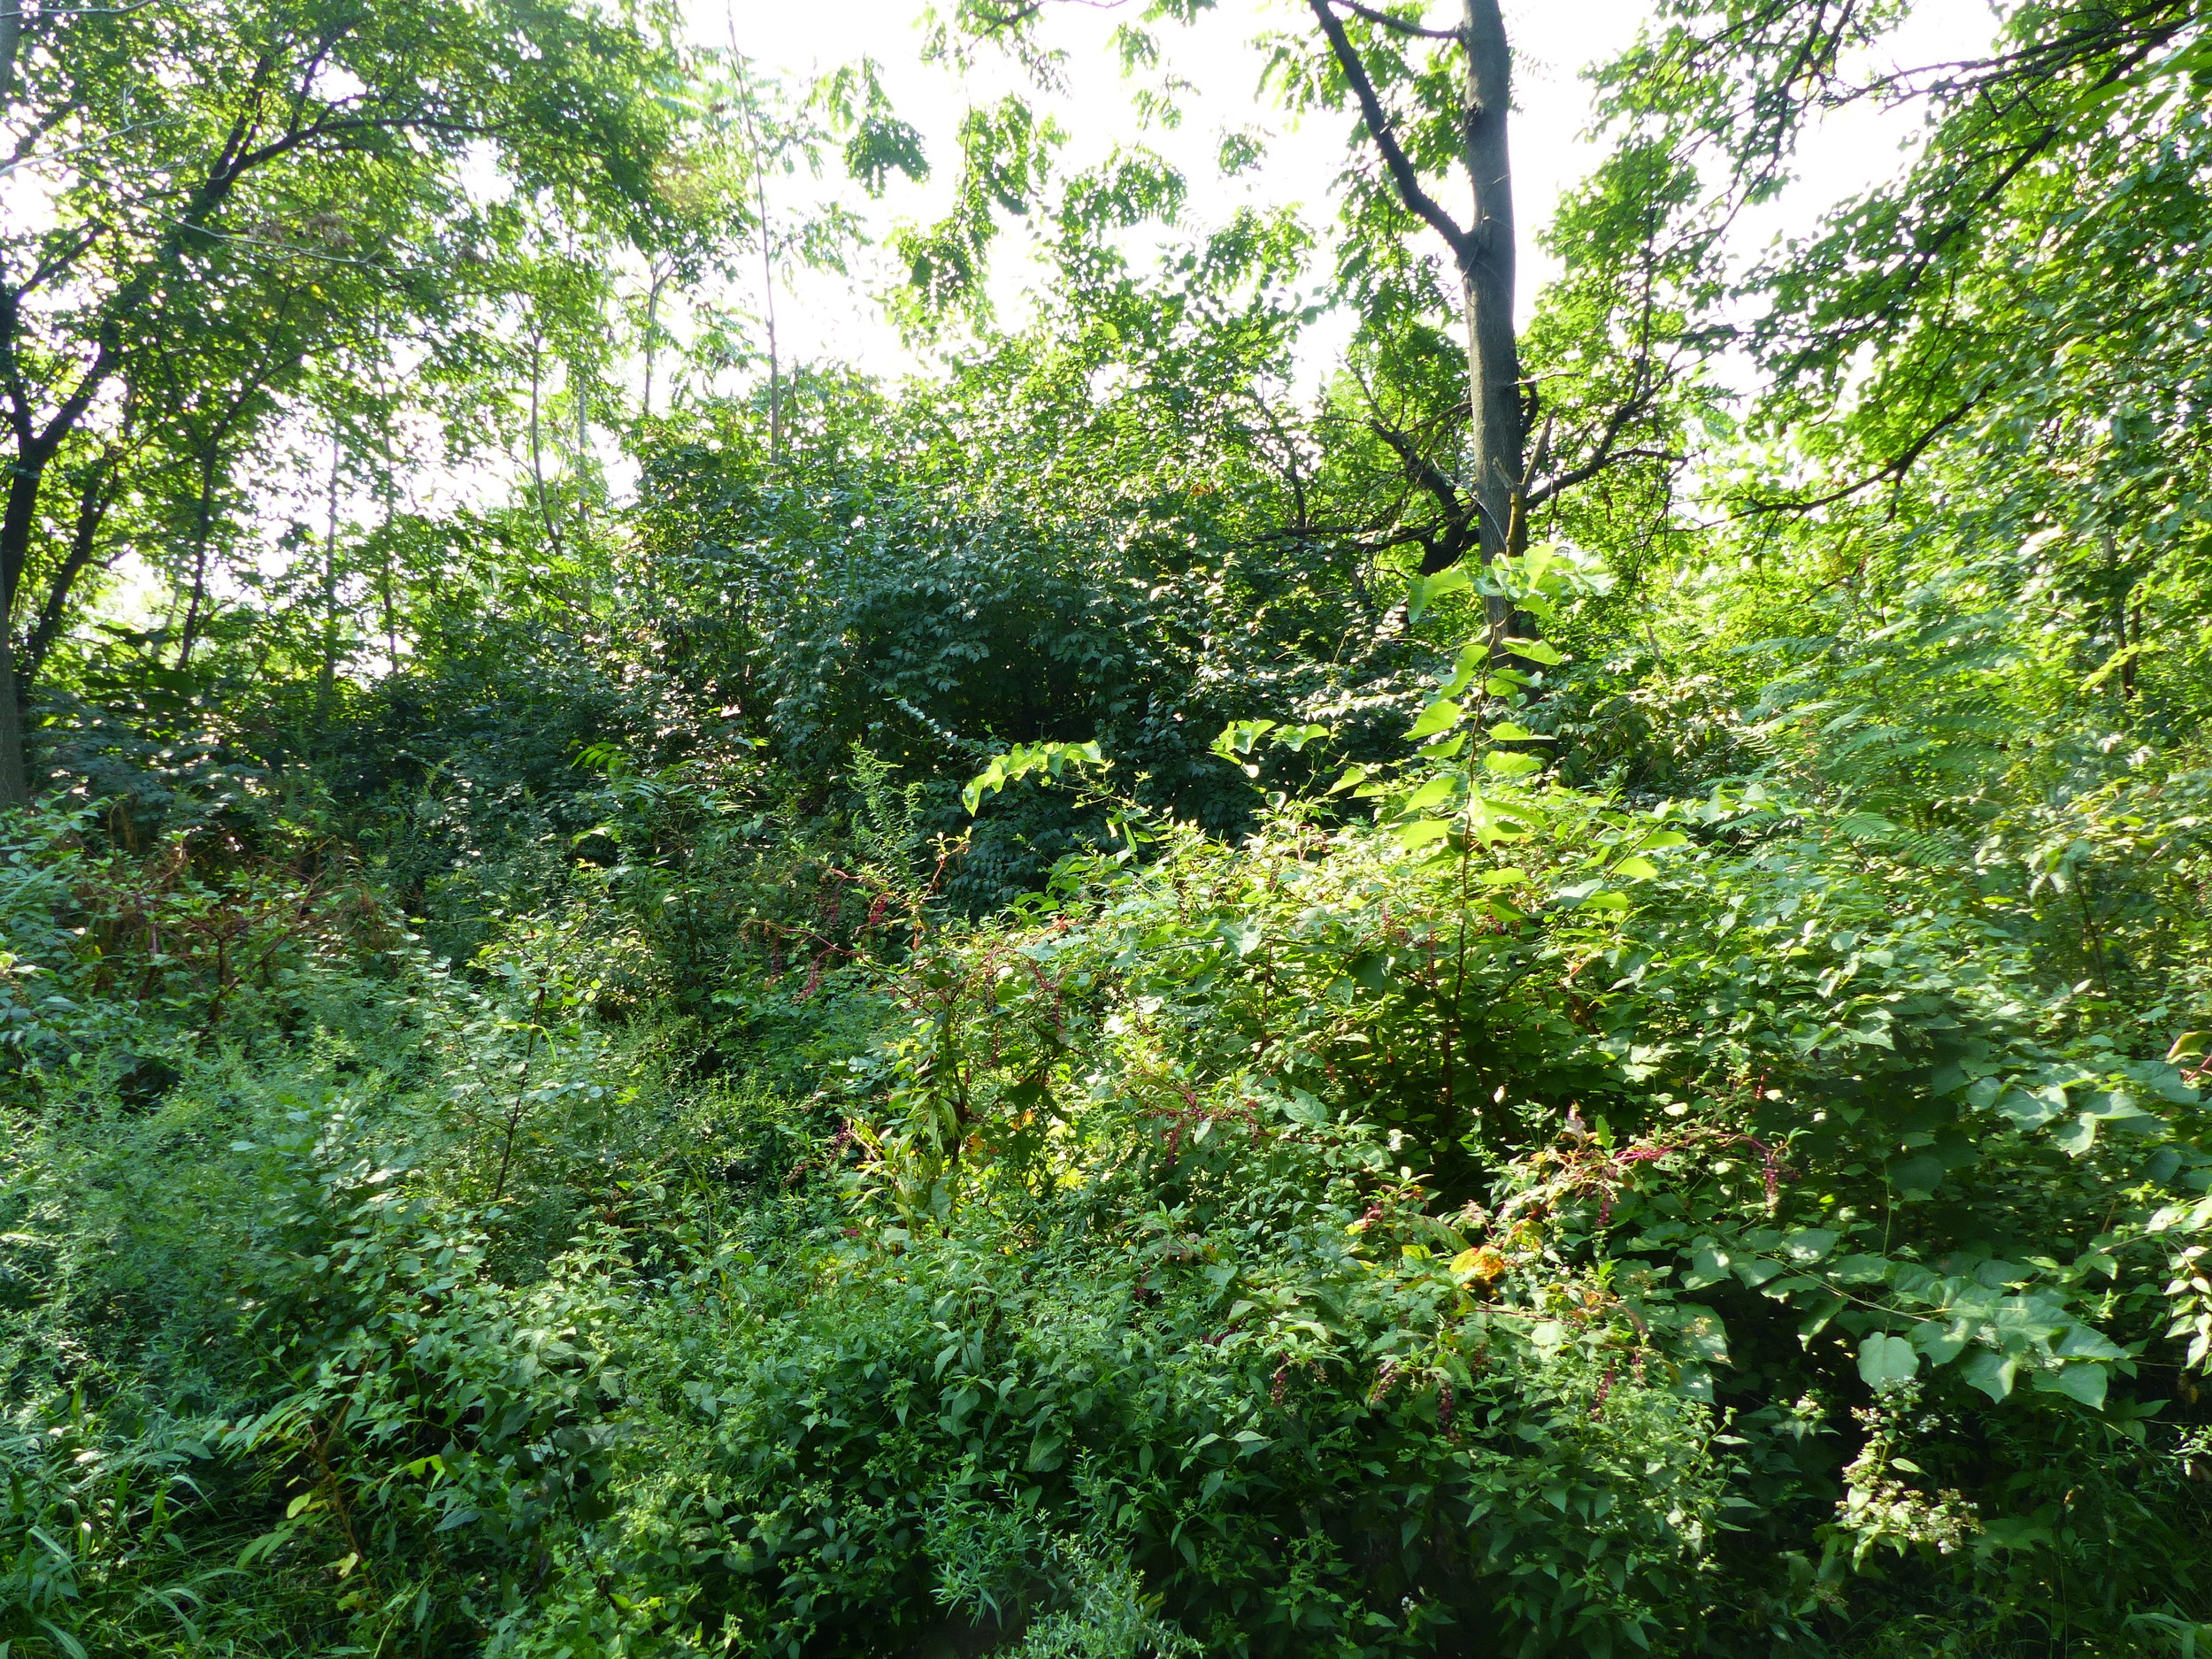 The area prior to the trails being created